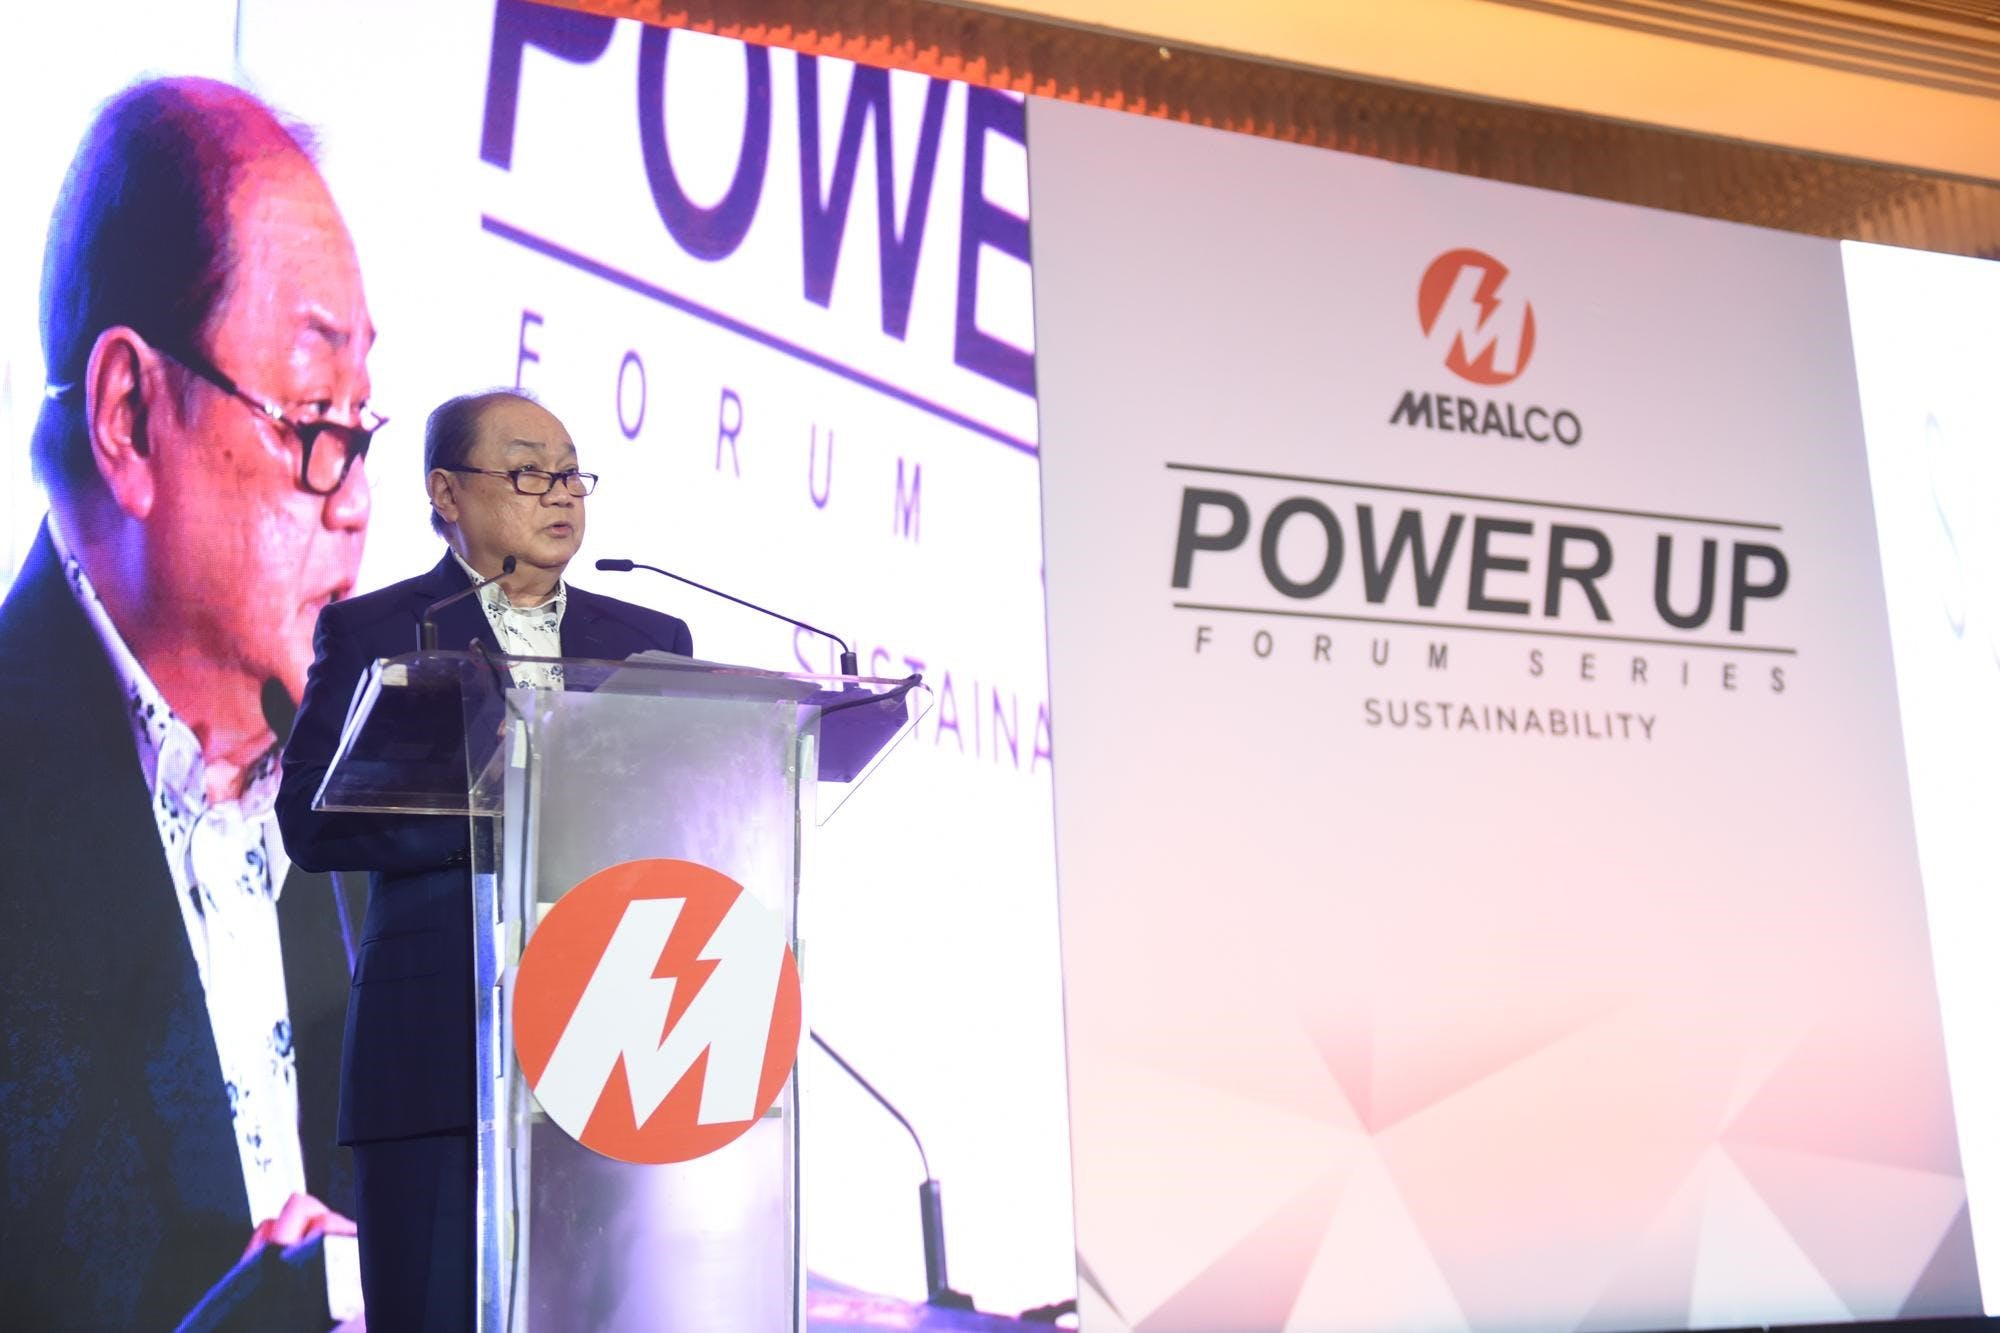 Meralco Looks Toward A Sustainable Future In Power Up Forum